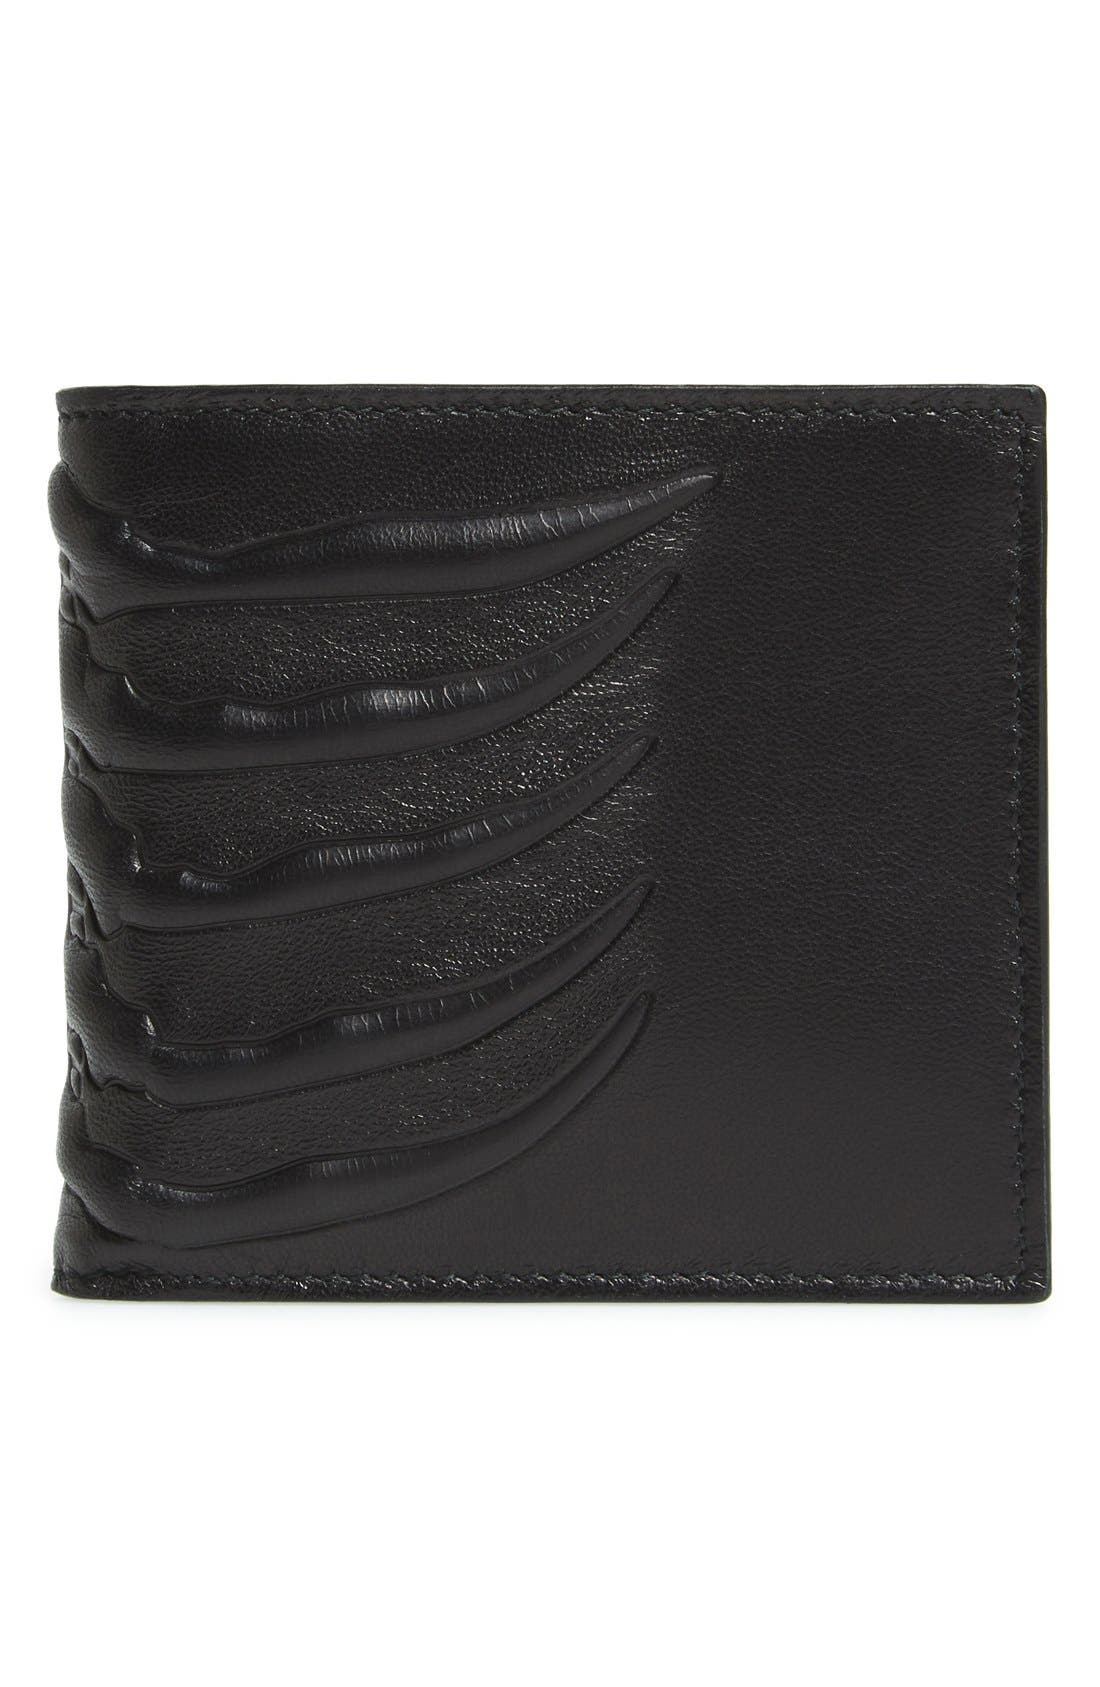 Main Image - Alexander McQueen Rib Cage Leather Wallet